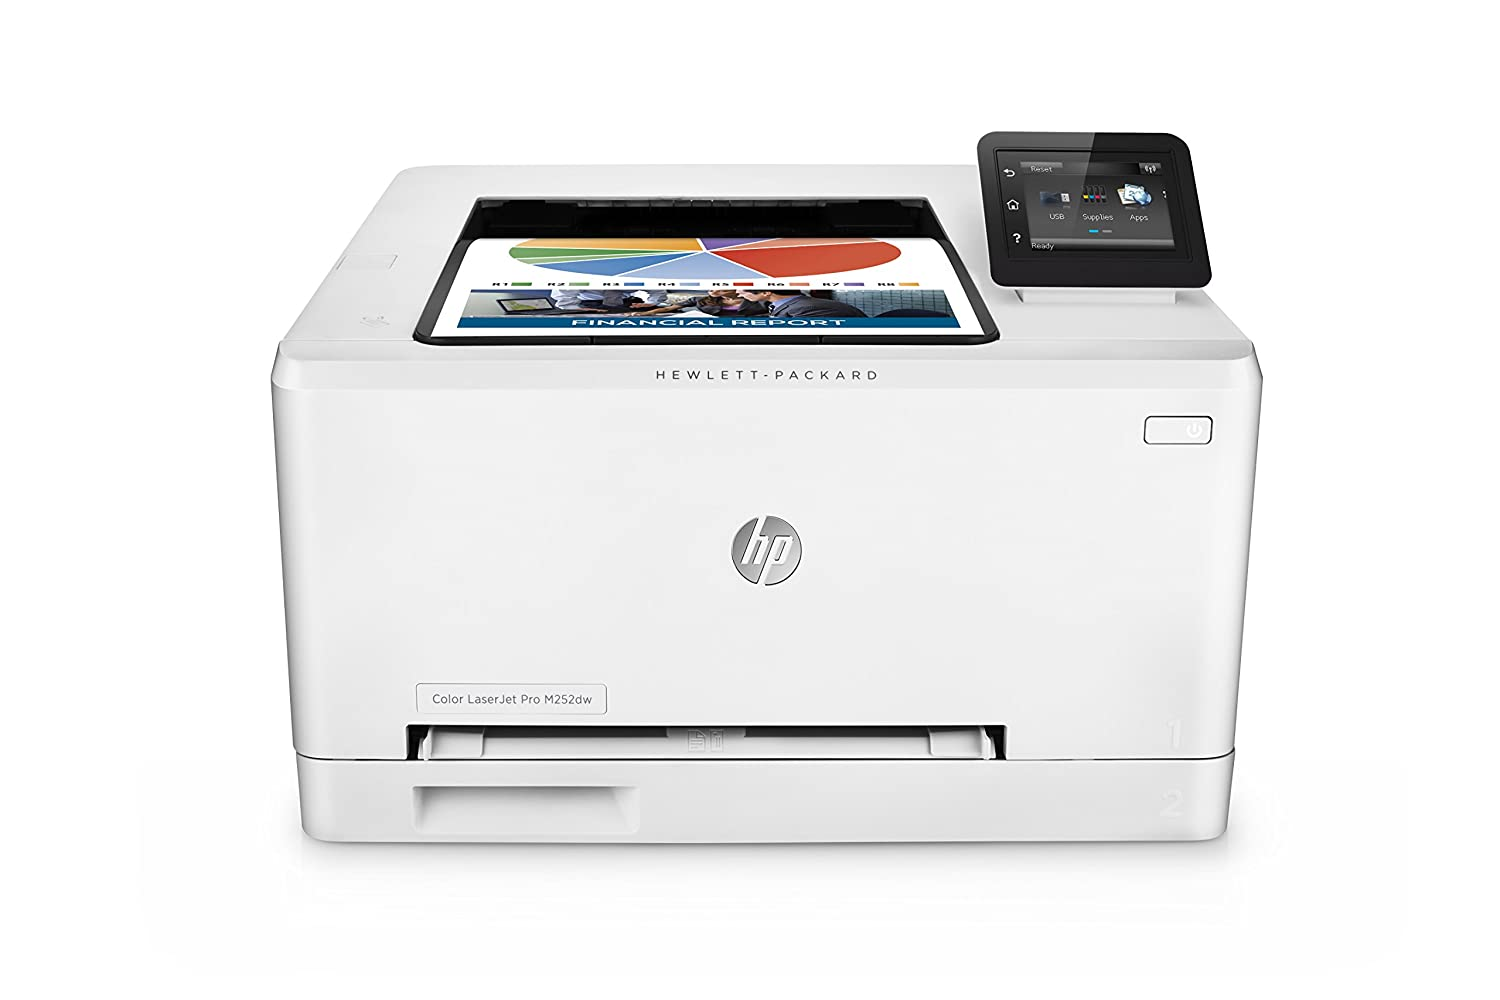 HP Color LaserJet Pro Mdw Impresora láser B N PPM color PPM